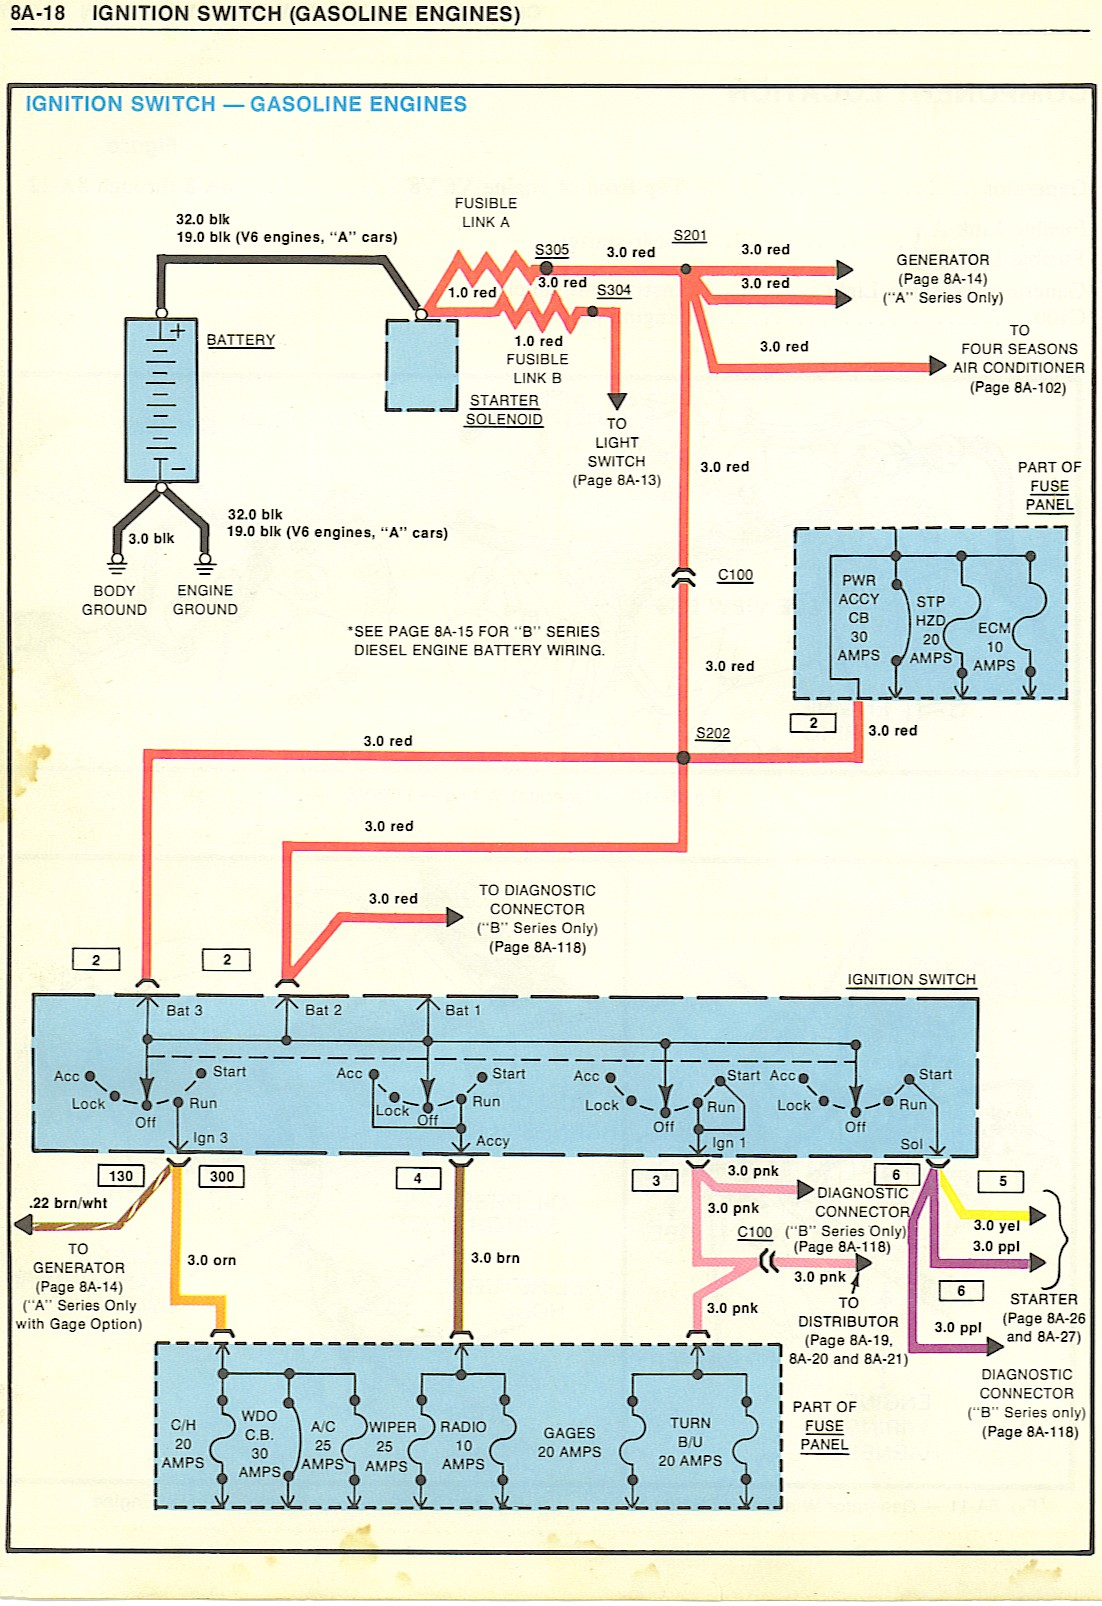 93 s10 stereo wiring diagram carrier split air conditioner issue page 2 gbodyforum 3978 3988 general